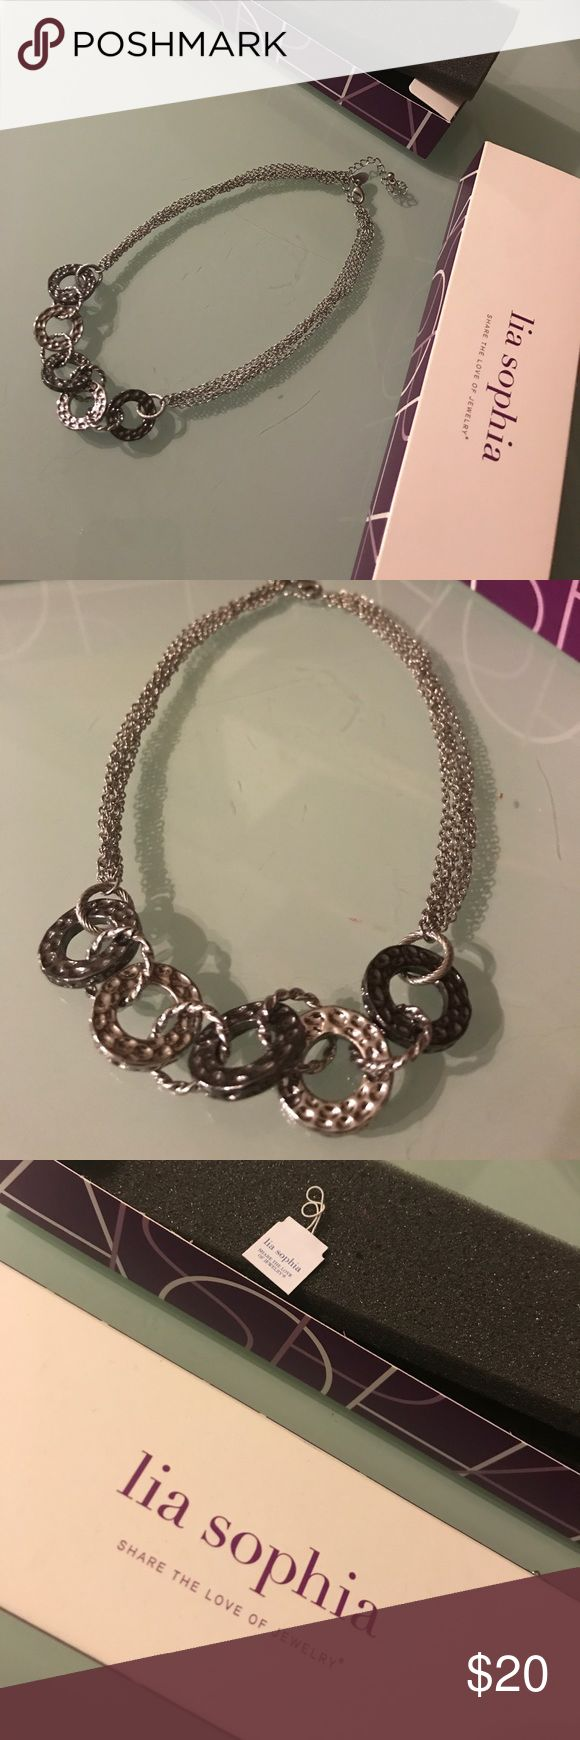 Lia Sophia necklace Beautiful never been worn necklace. Gunmetal and silver. Comes with the box. Perfect condition. Lia Sophia Jewelry Necklaces